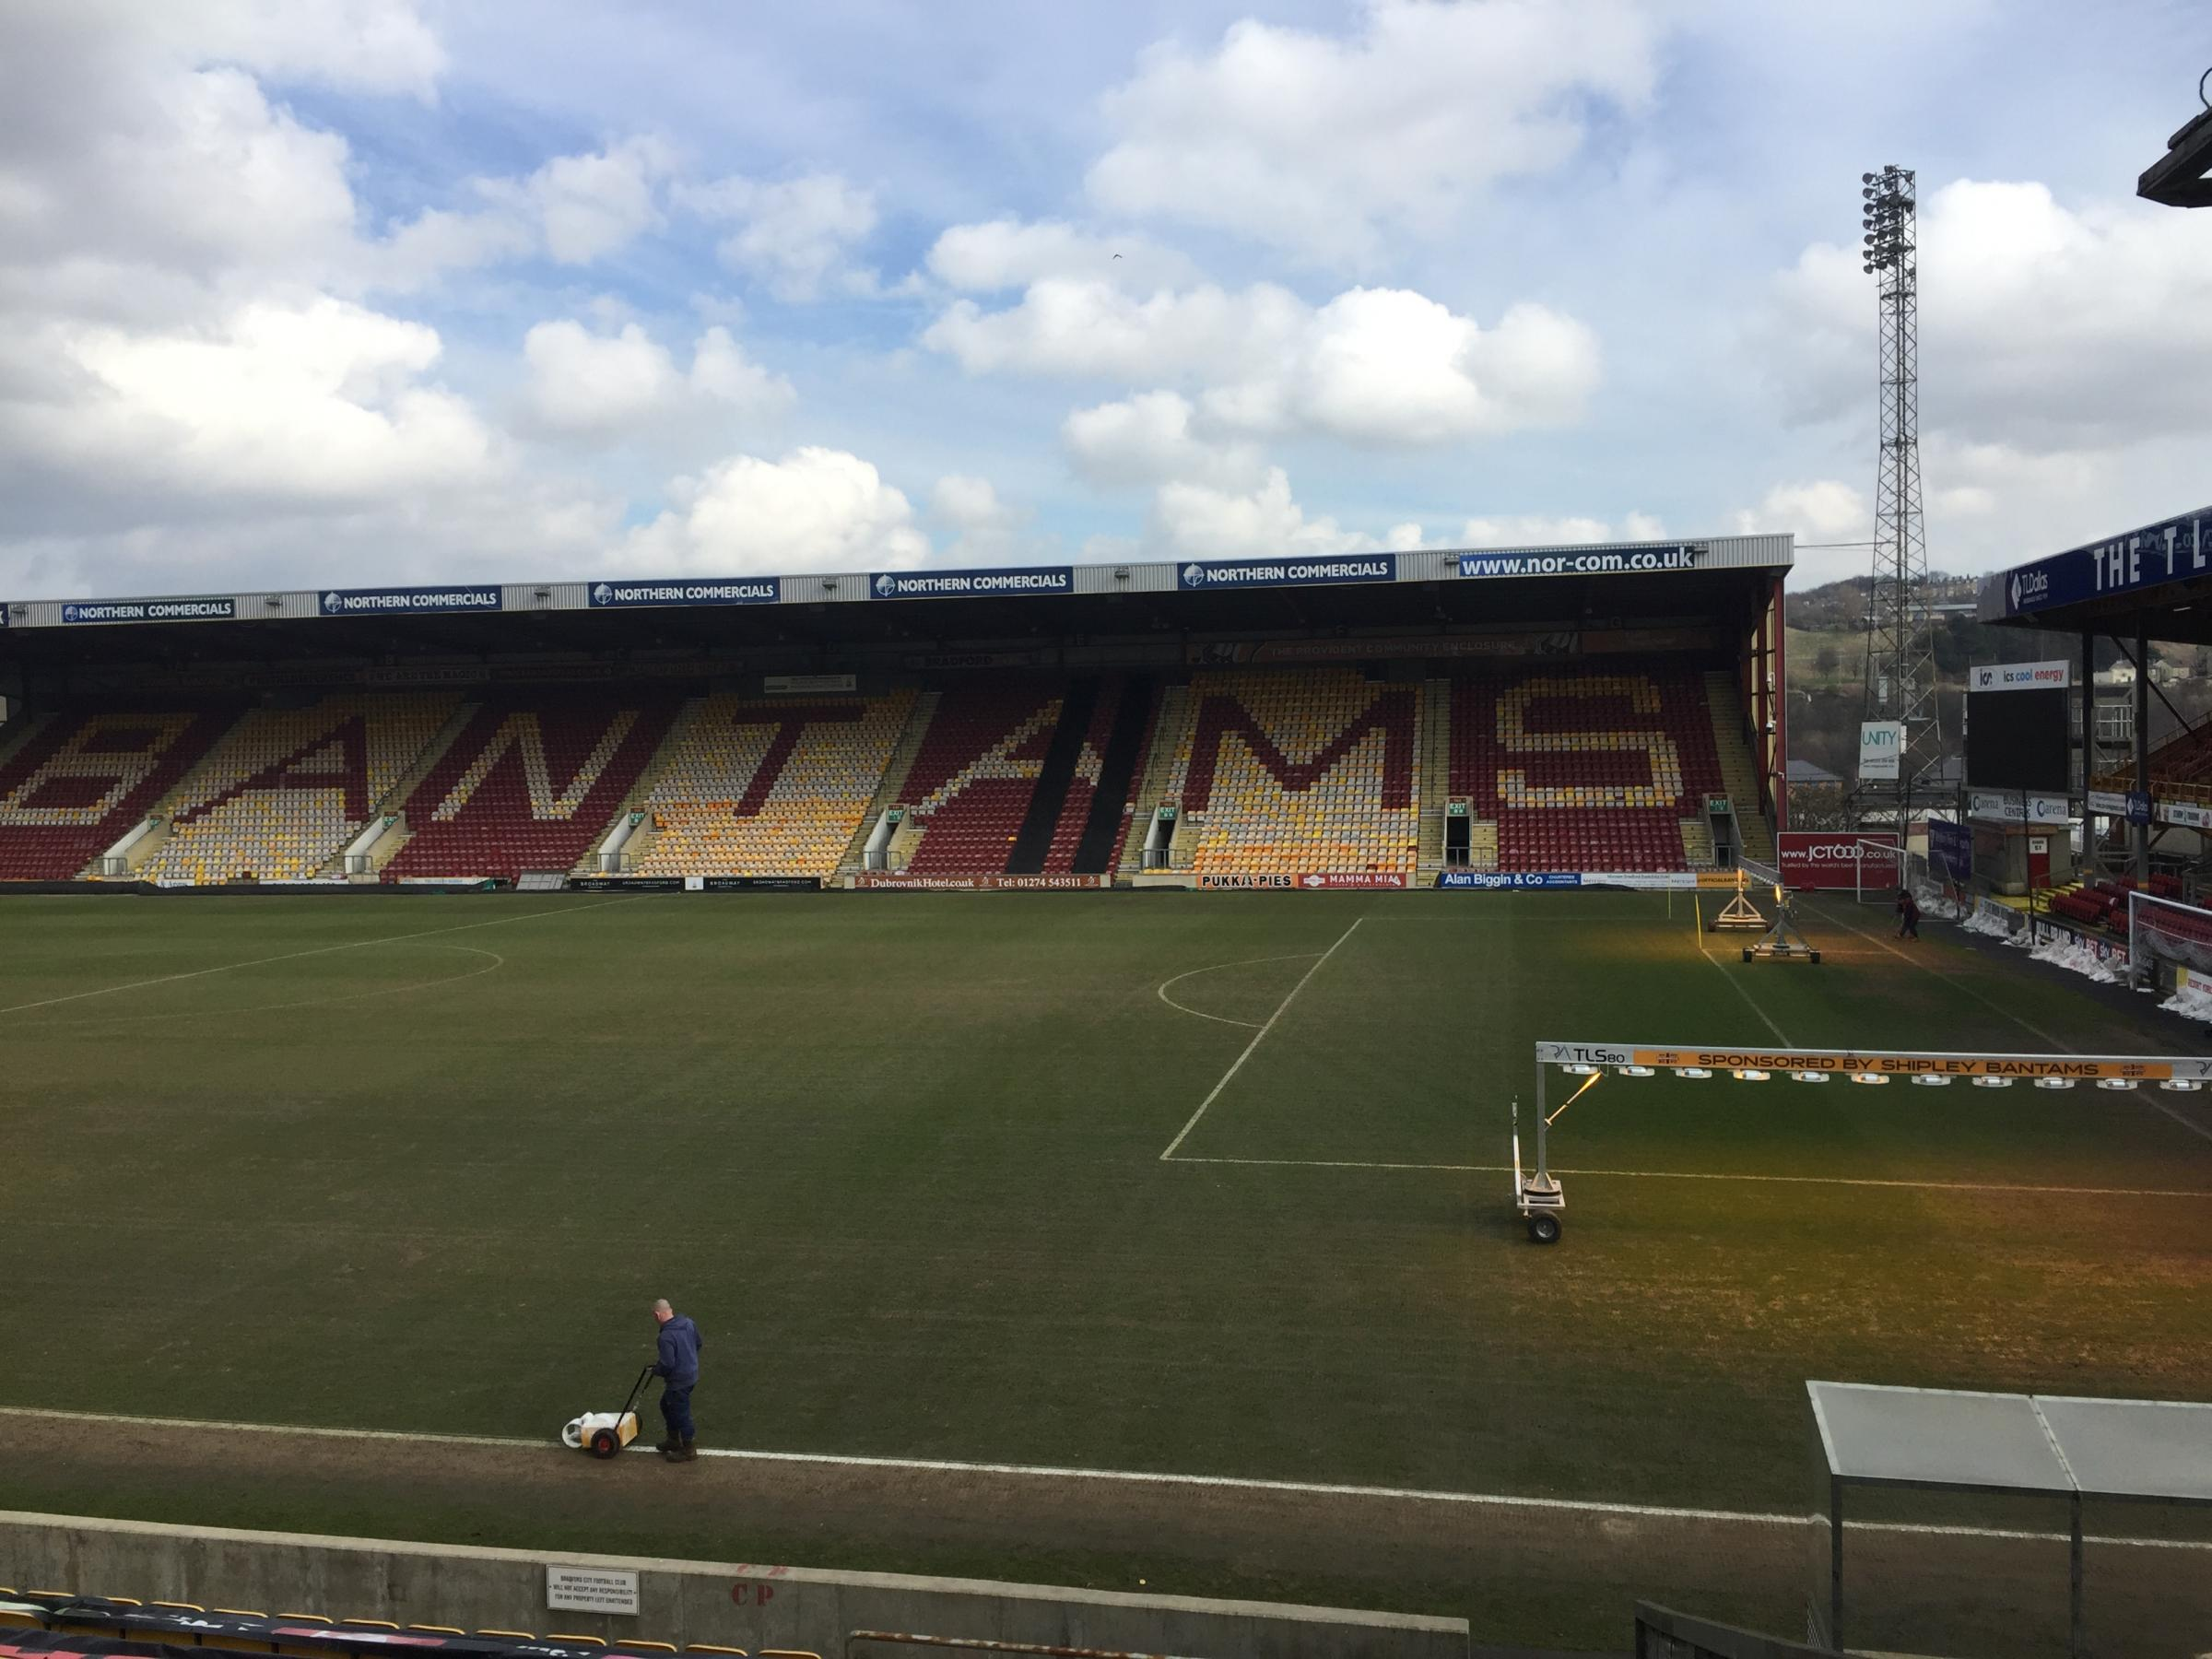 Valley Parade this afternoon. Pic: Bradford City